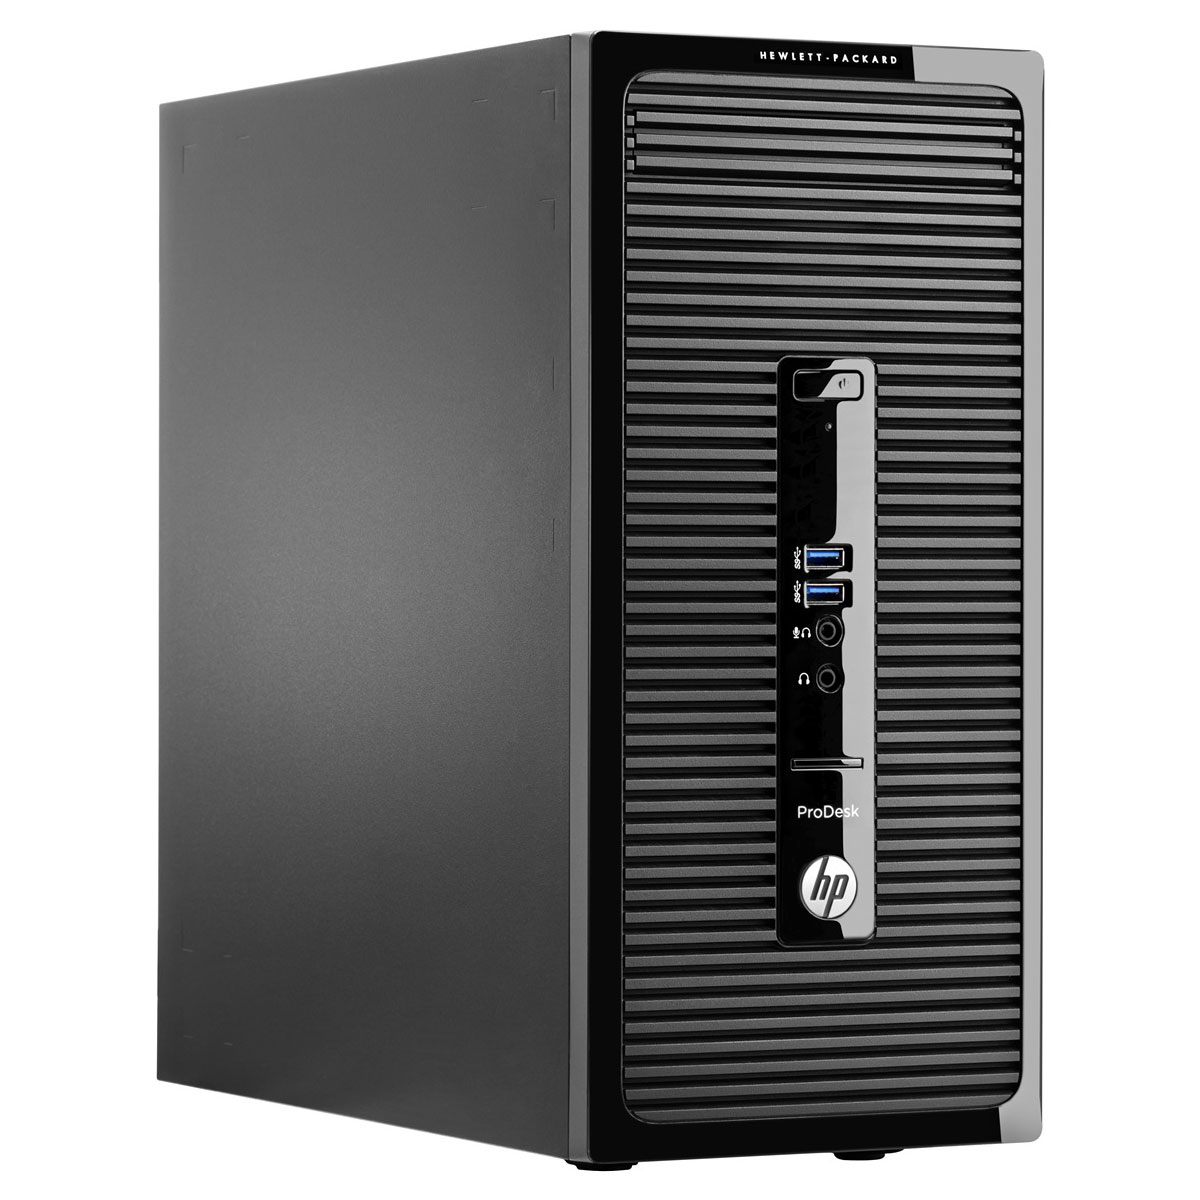 Hp prodesk 490 g2 j4b02ea pc de bureau hp sur - Ordinateur de bureau hp intel core i7 ...